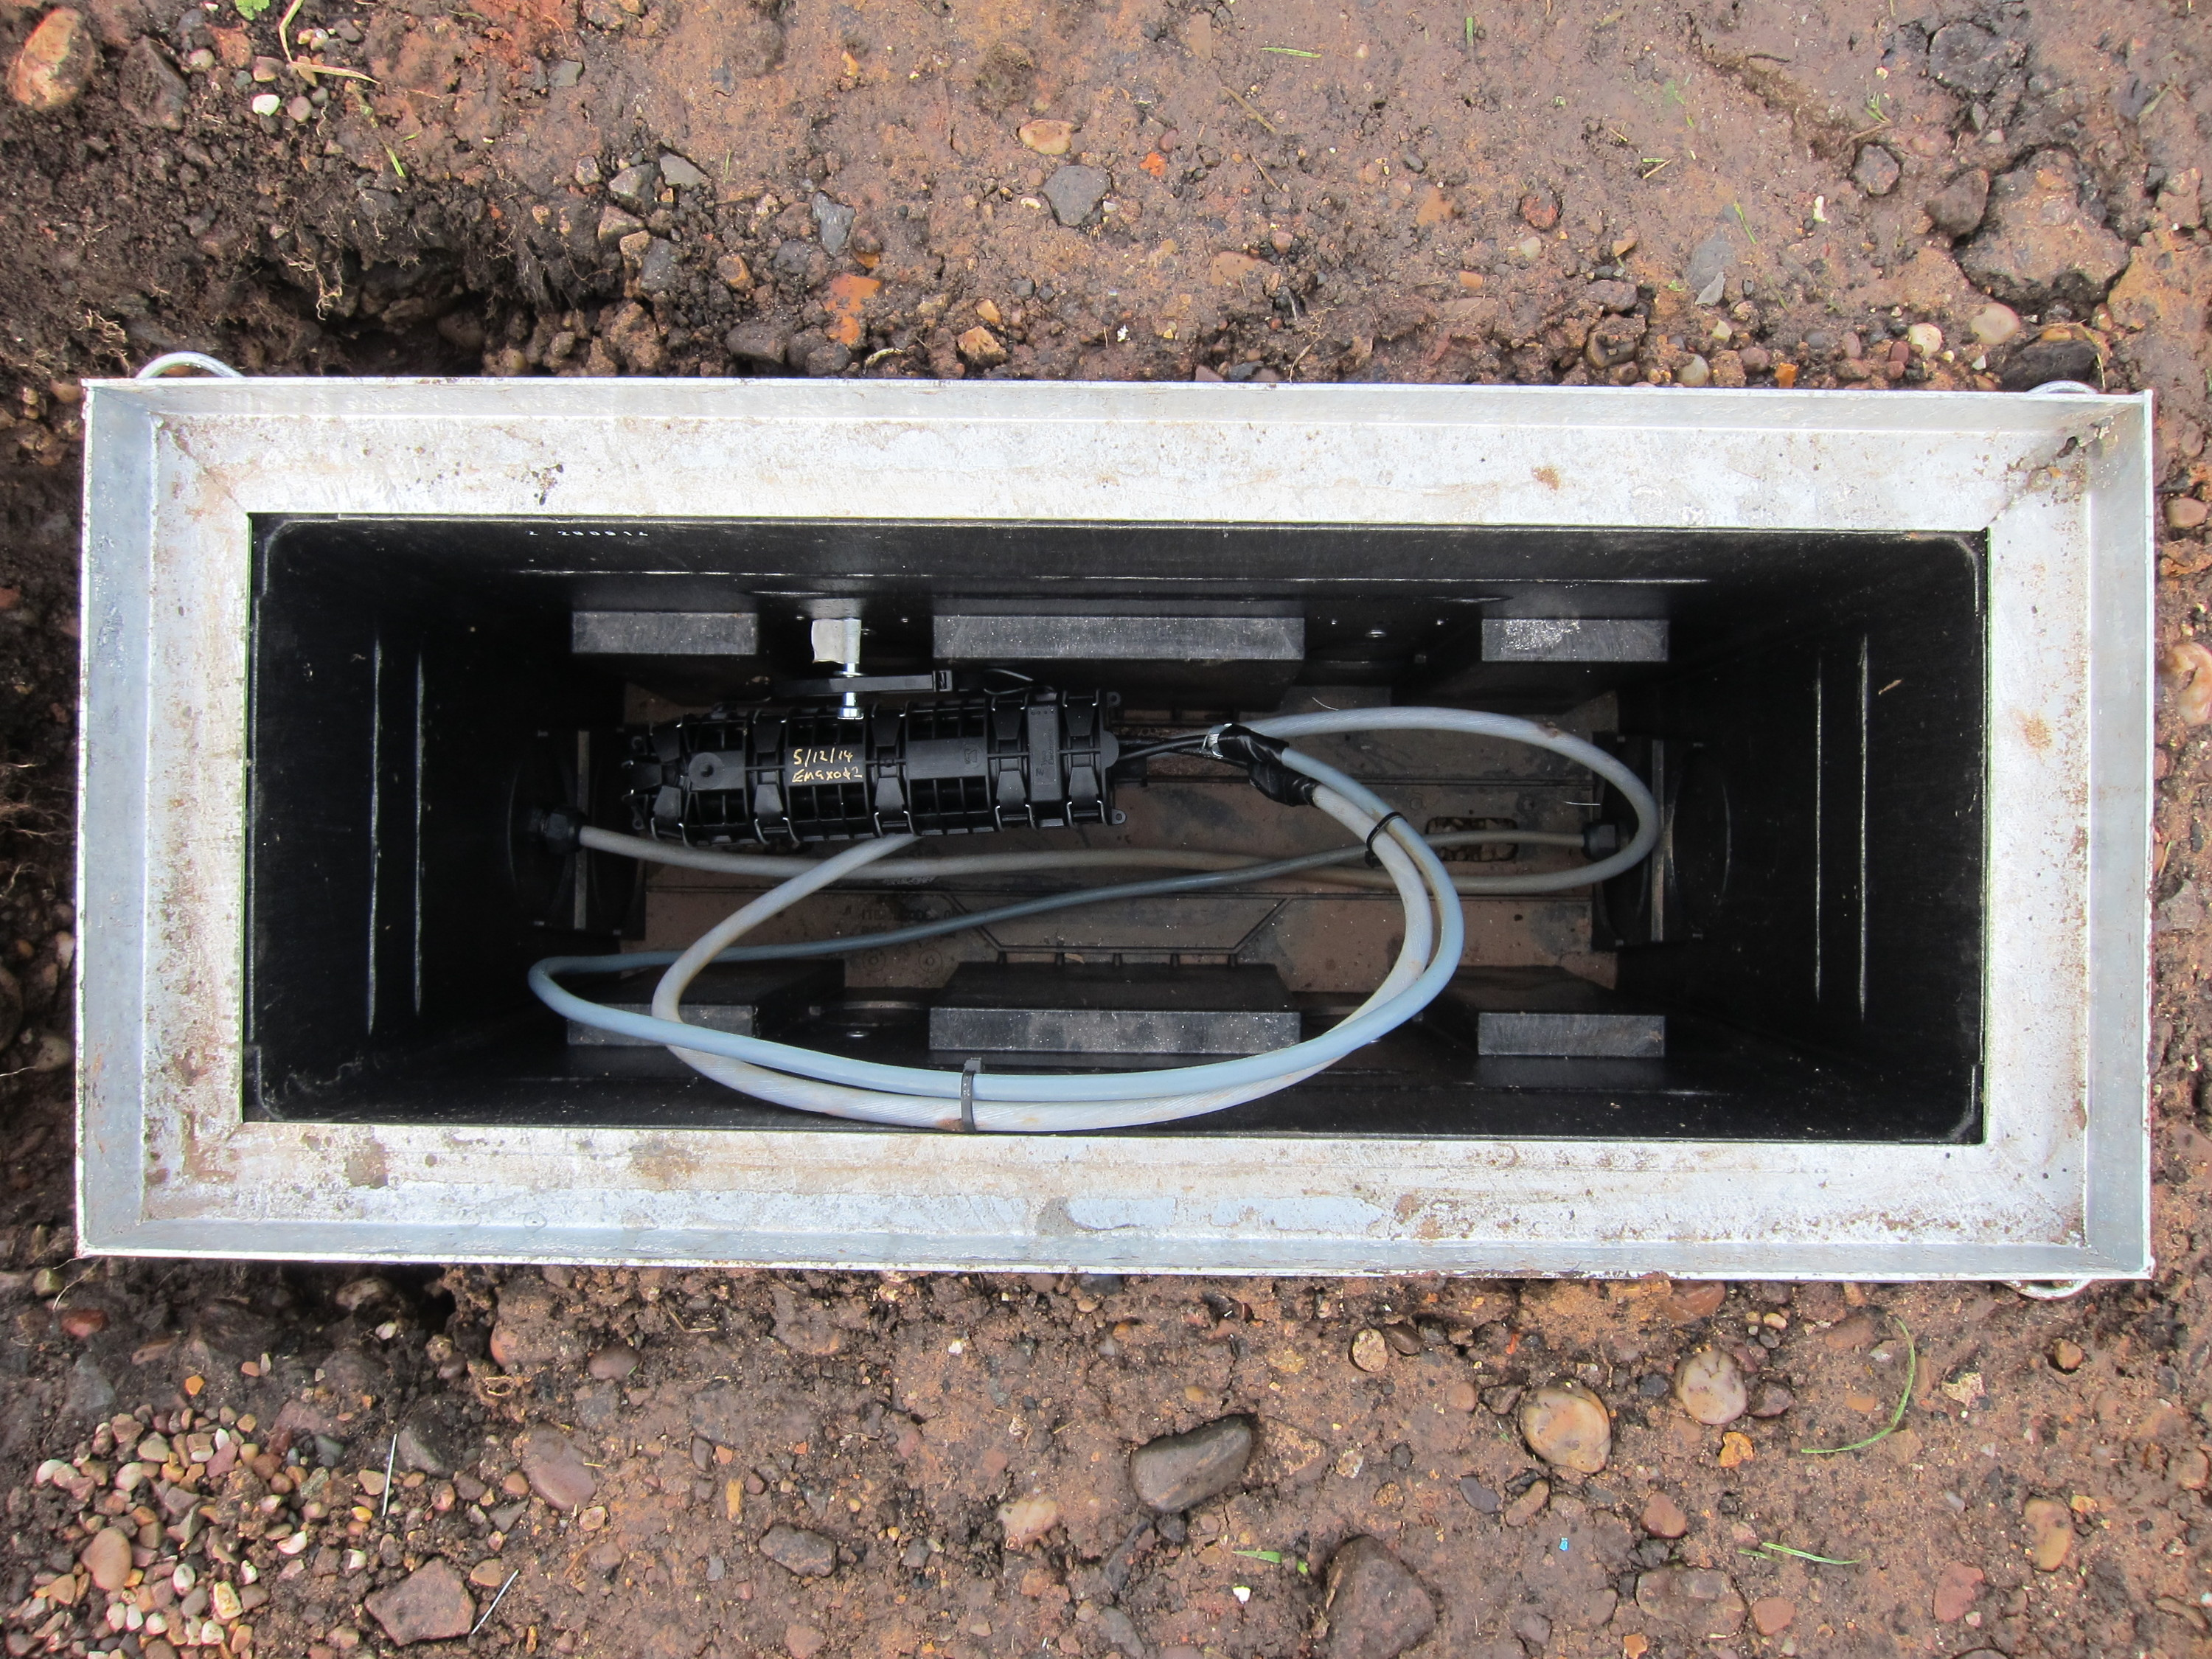 Reconnecting The Phone Line How Hard Can That Be Marsh Flatts Bt Connection Box Wiring Inside Of Jb 26 Showing Joined Cables